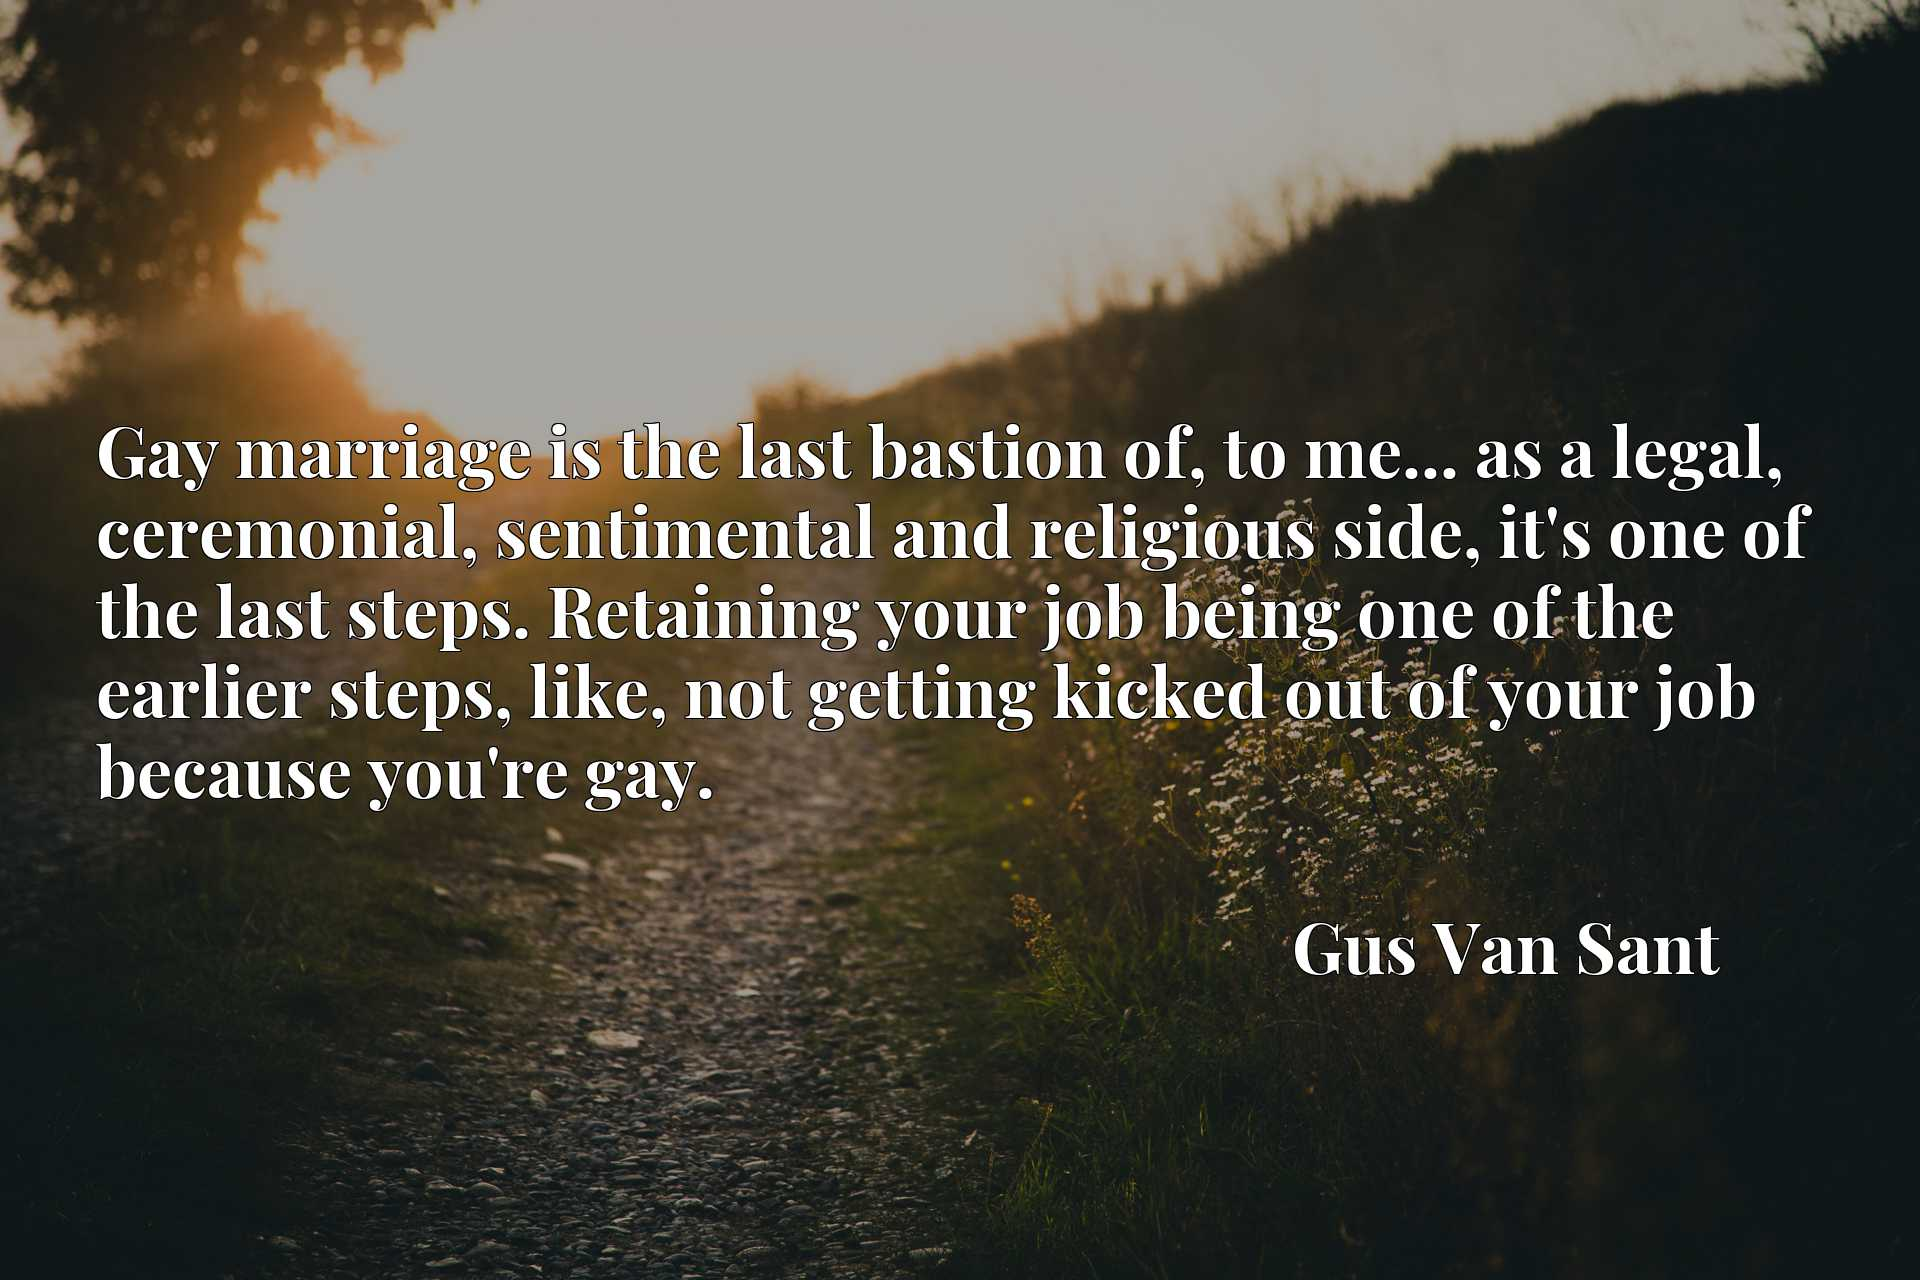 Quote Picture :Gay marriage is the last bastion of, to me... as a legal, ceremonial, sentimental and religious side, it's one of the last steps. Retaining your job being one of the earlier steps, like, not getting kicked out of your job because you're gay.